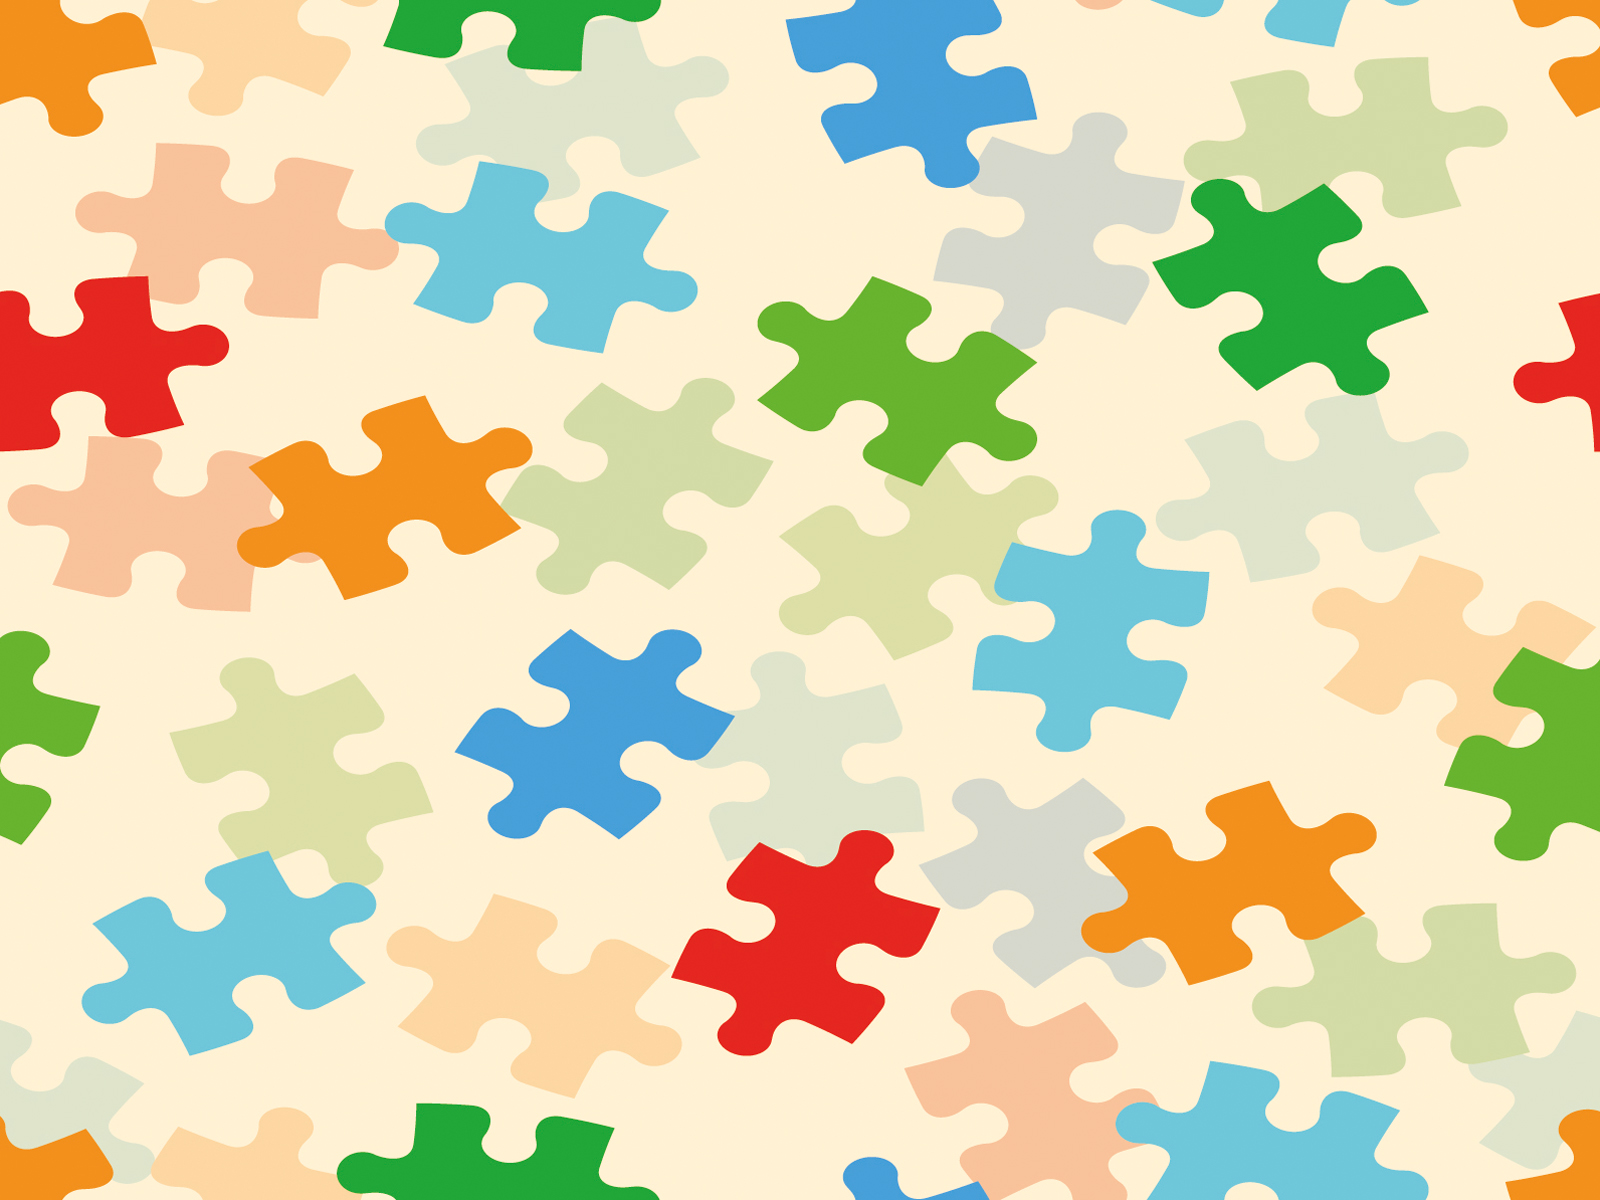 Rainbow Sweet Puzzle Backgrounds - Games, Pattern, Sports ...